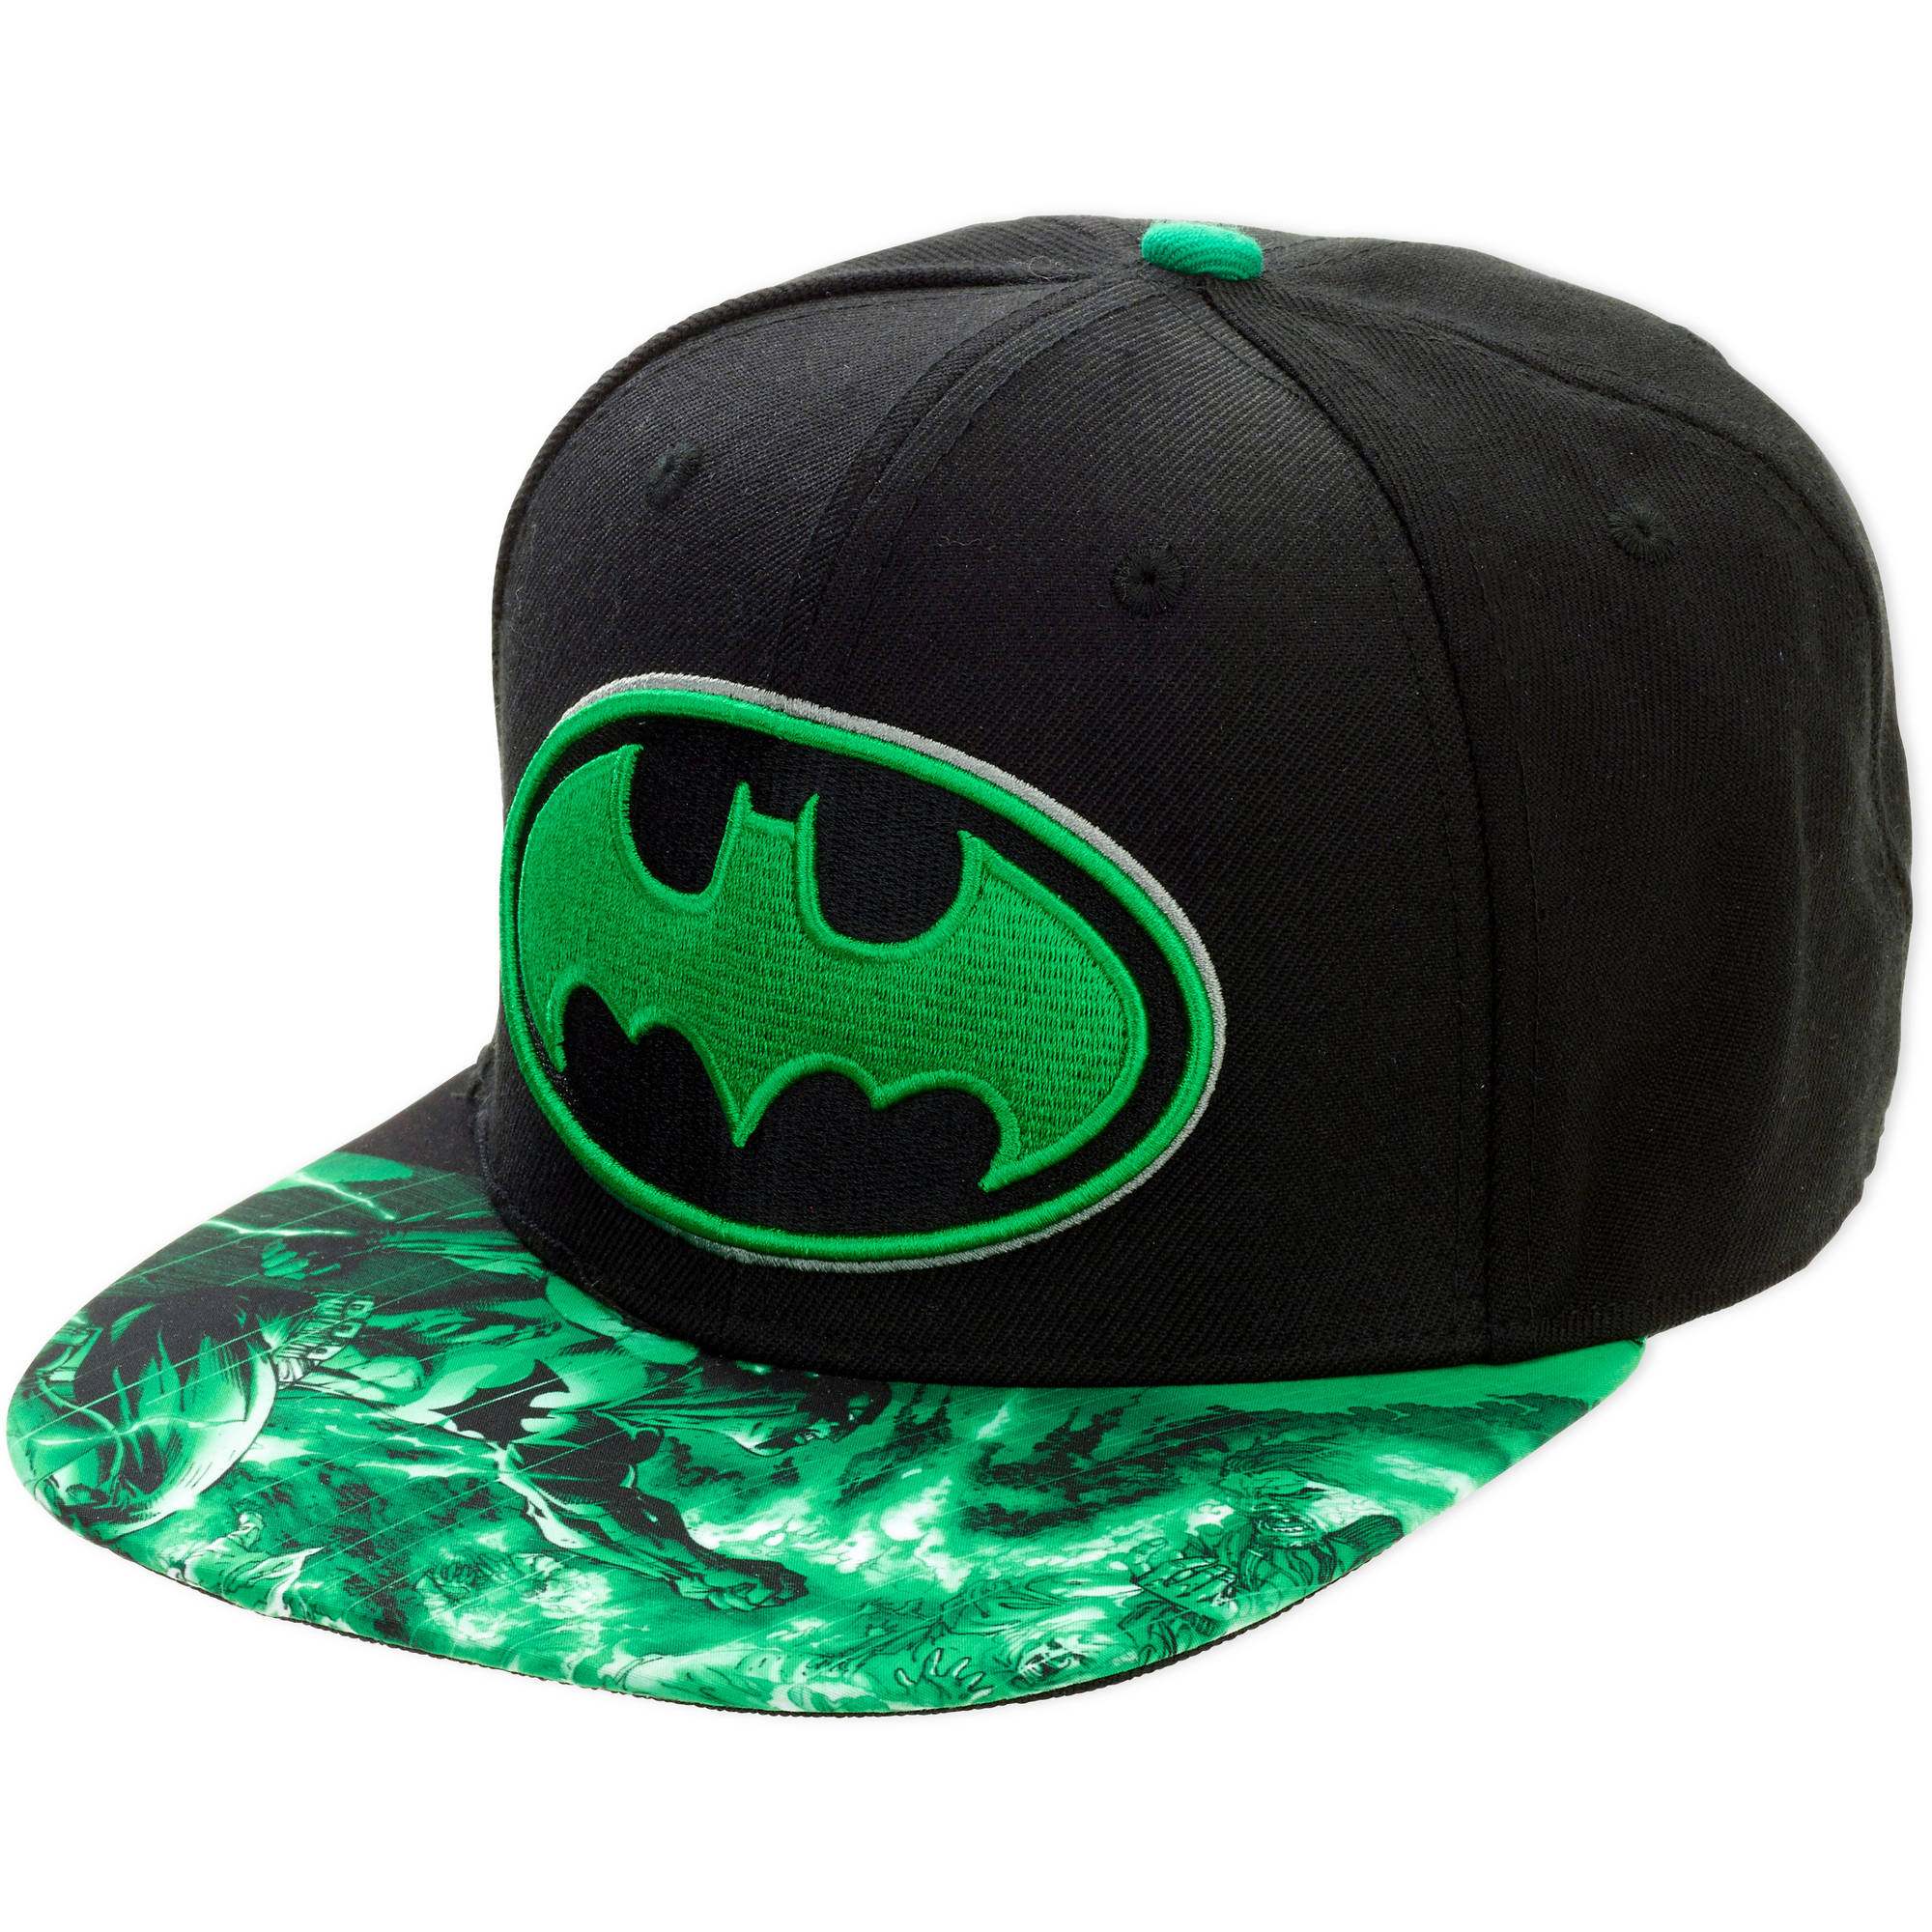 Batman 3D Sublimation Flatbill Baseball Cap